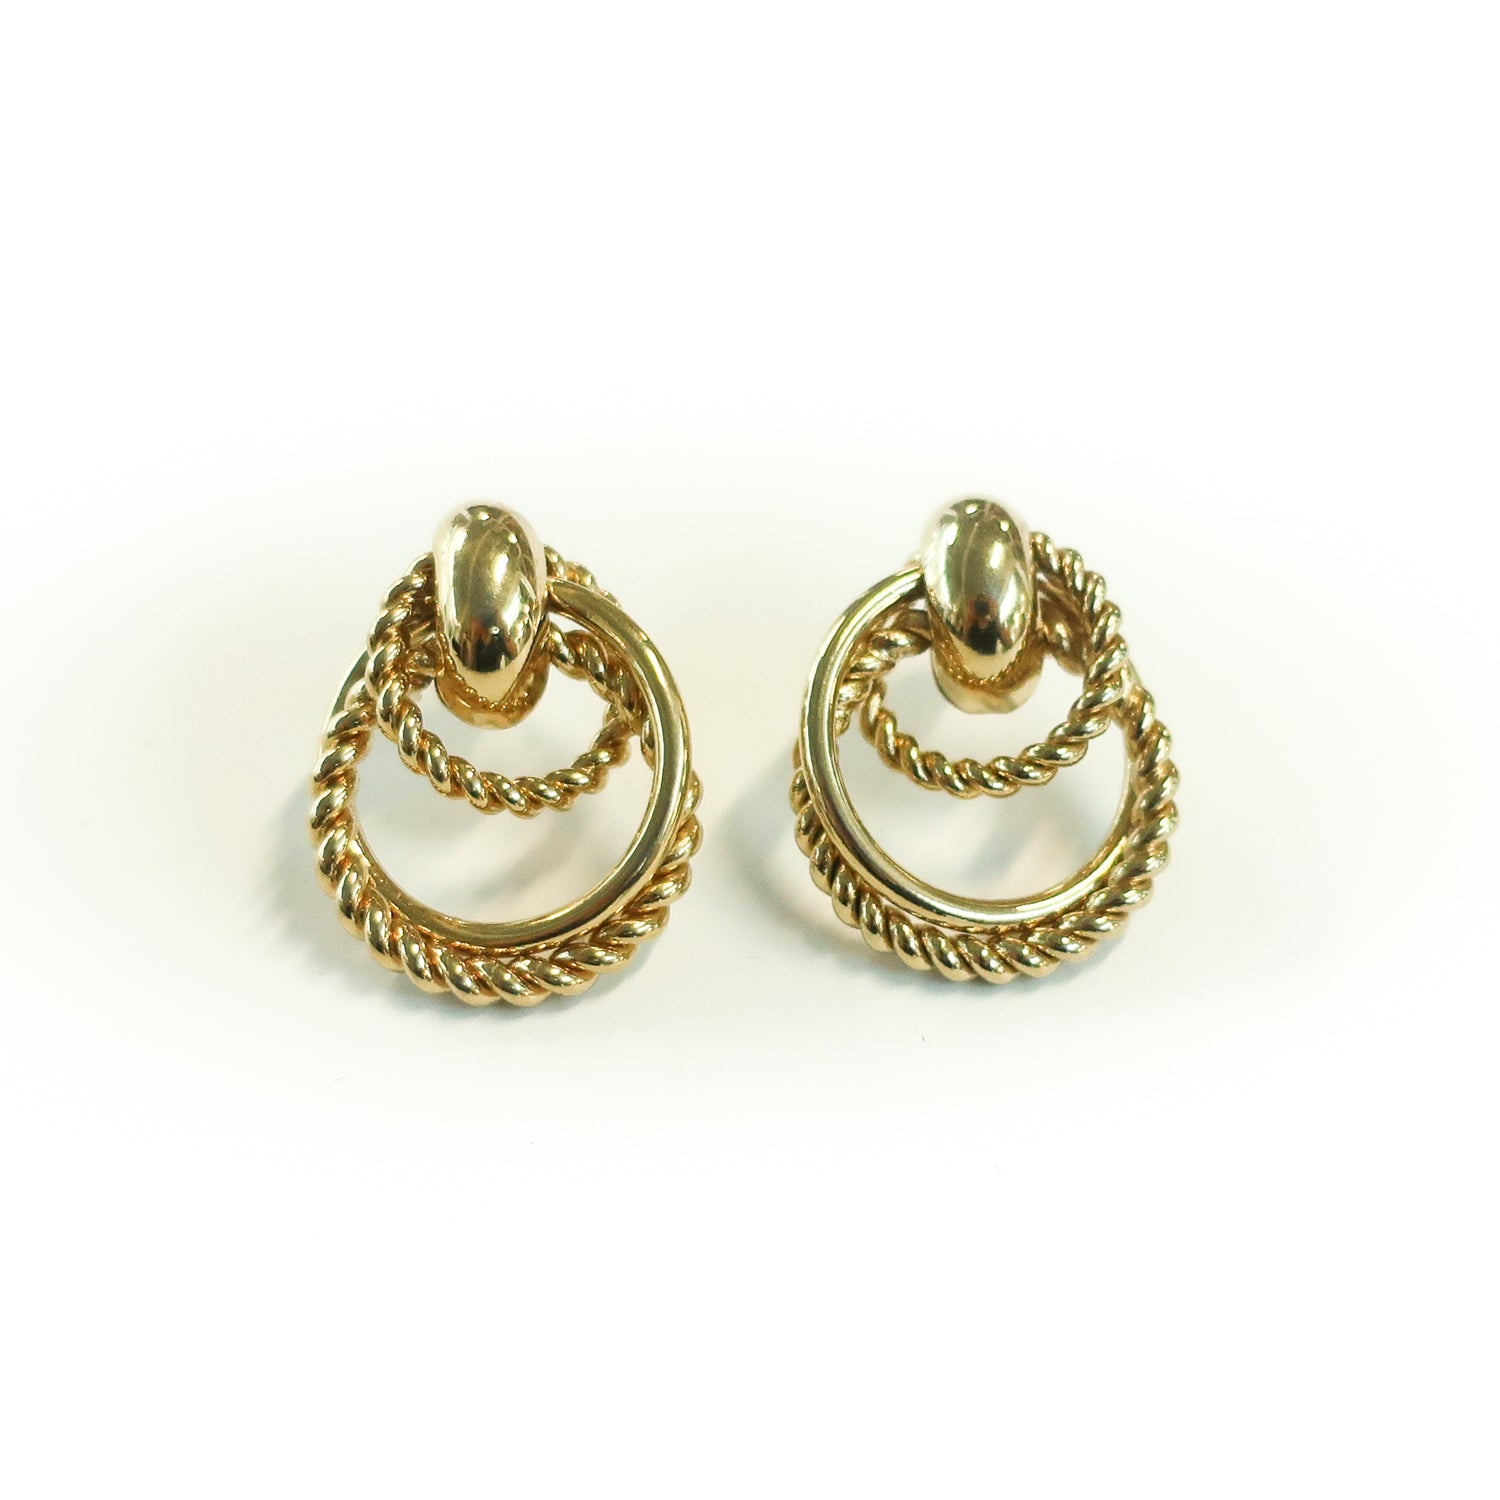 "Second Room Vintage Clothing. Vintage gold tone twisted rope door knocker style earrings, 7/8"" across and 1.25"" long. Original earring backs have been replaced with new, clear silicone earring backs. Free North American shipping on all orders."